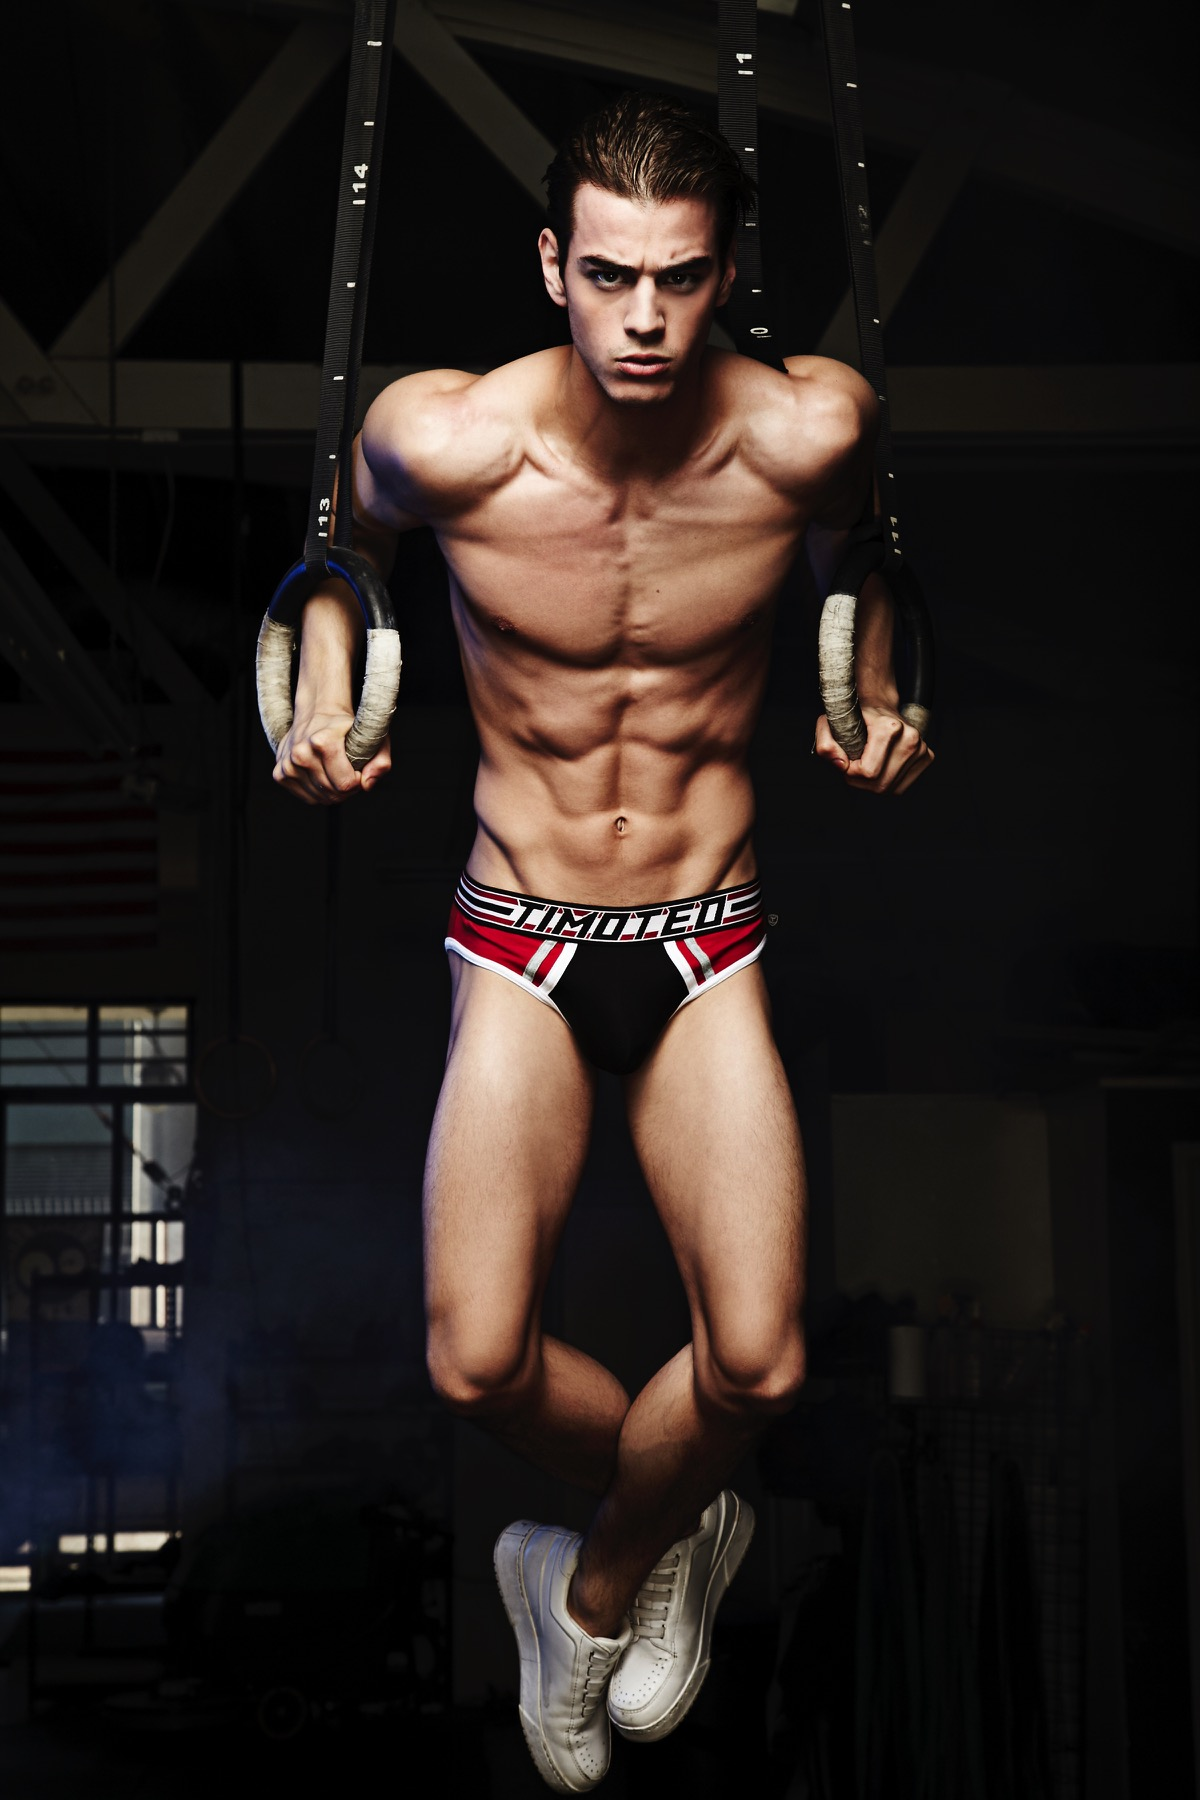 Timoteo featuring Scott Gardner by Photographer Allen Zaki ...